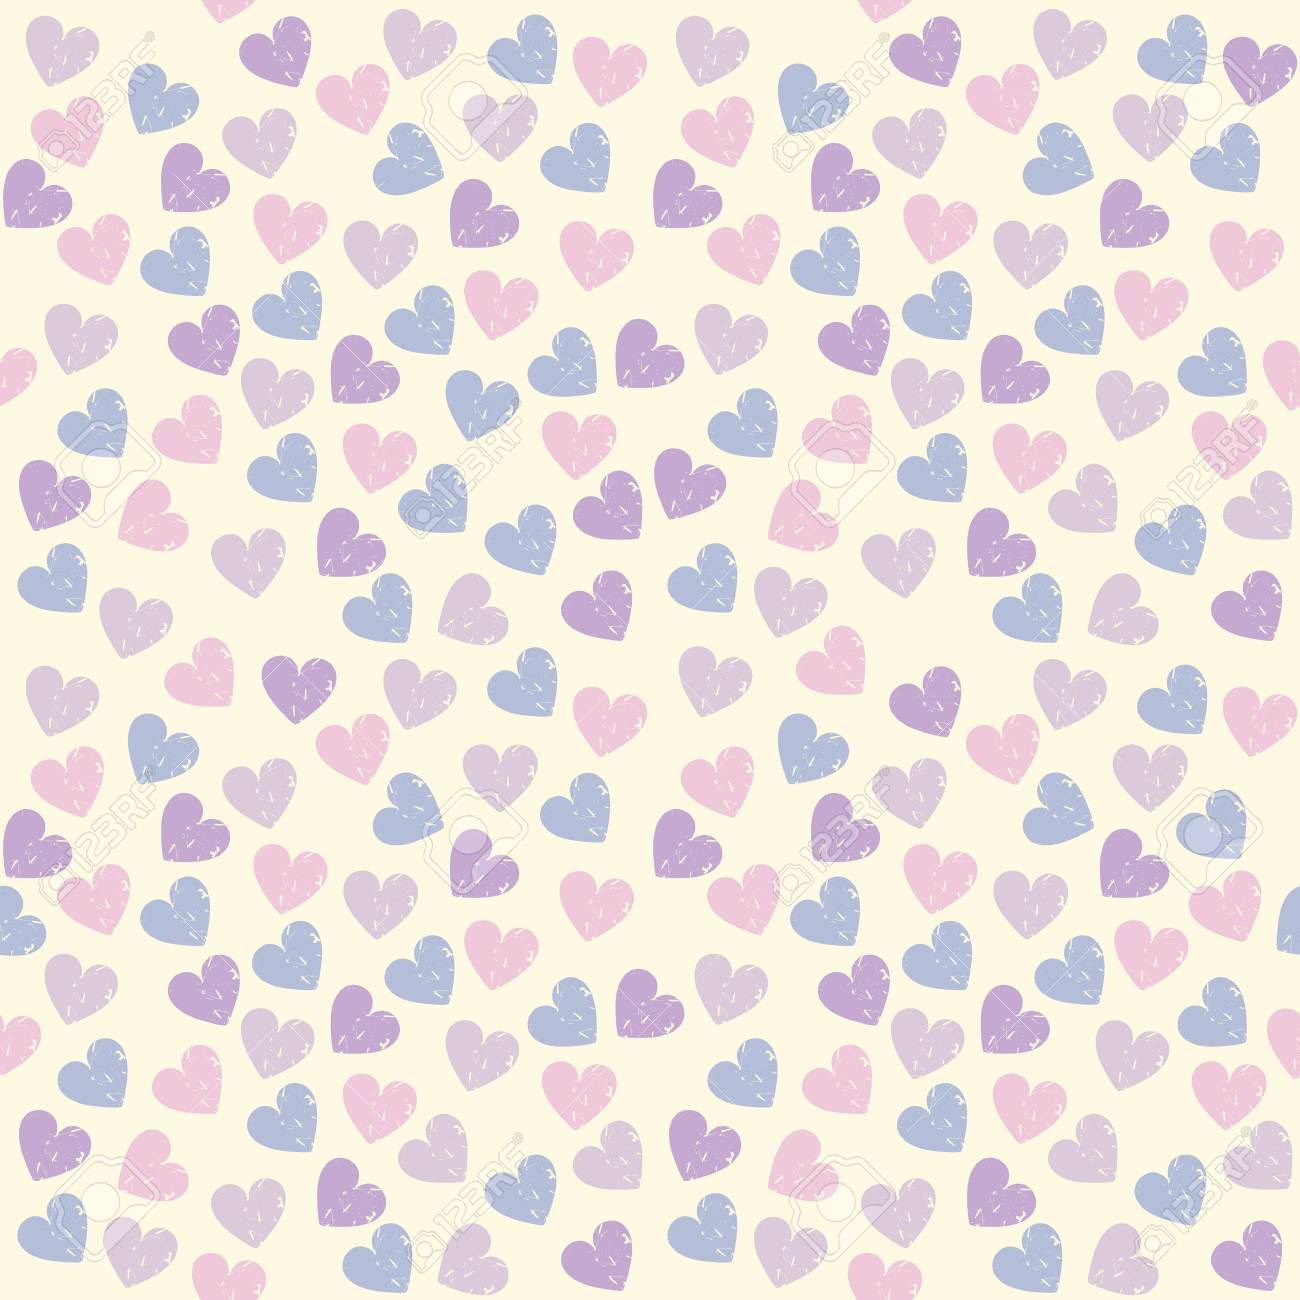 Cute Endless Pattern With Colorful Hearts Can Be Used For Wallpaper Design Fabric Linen